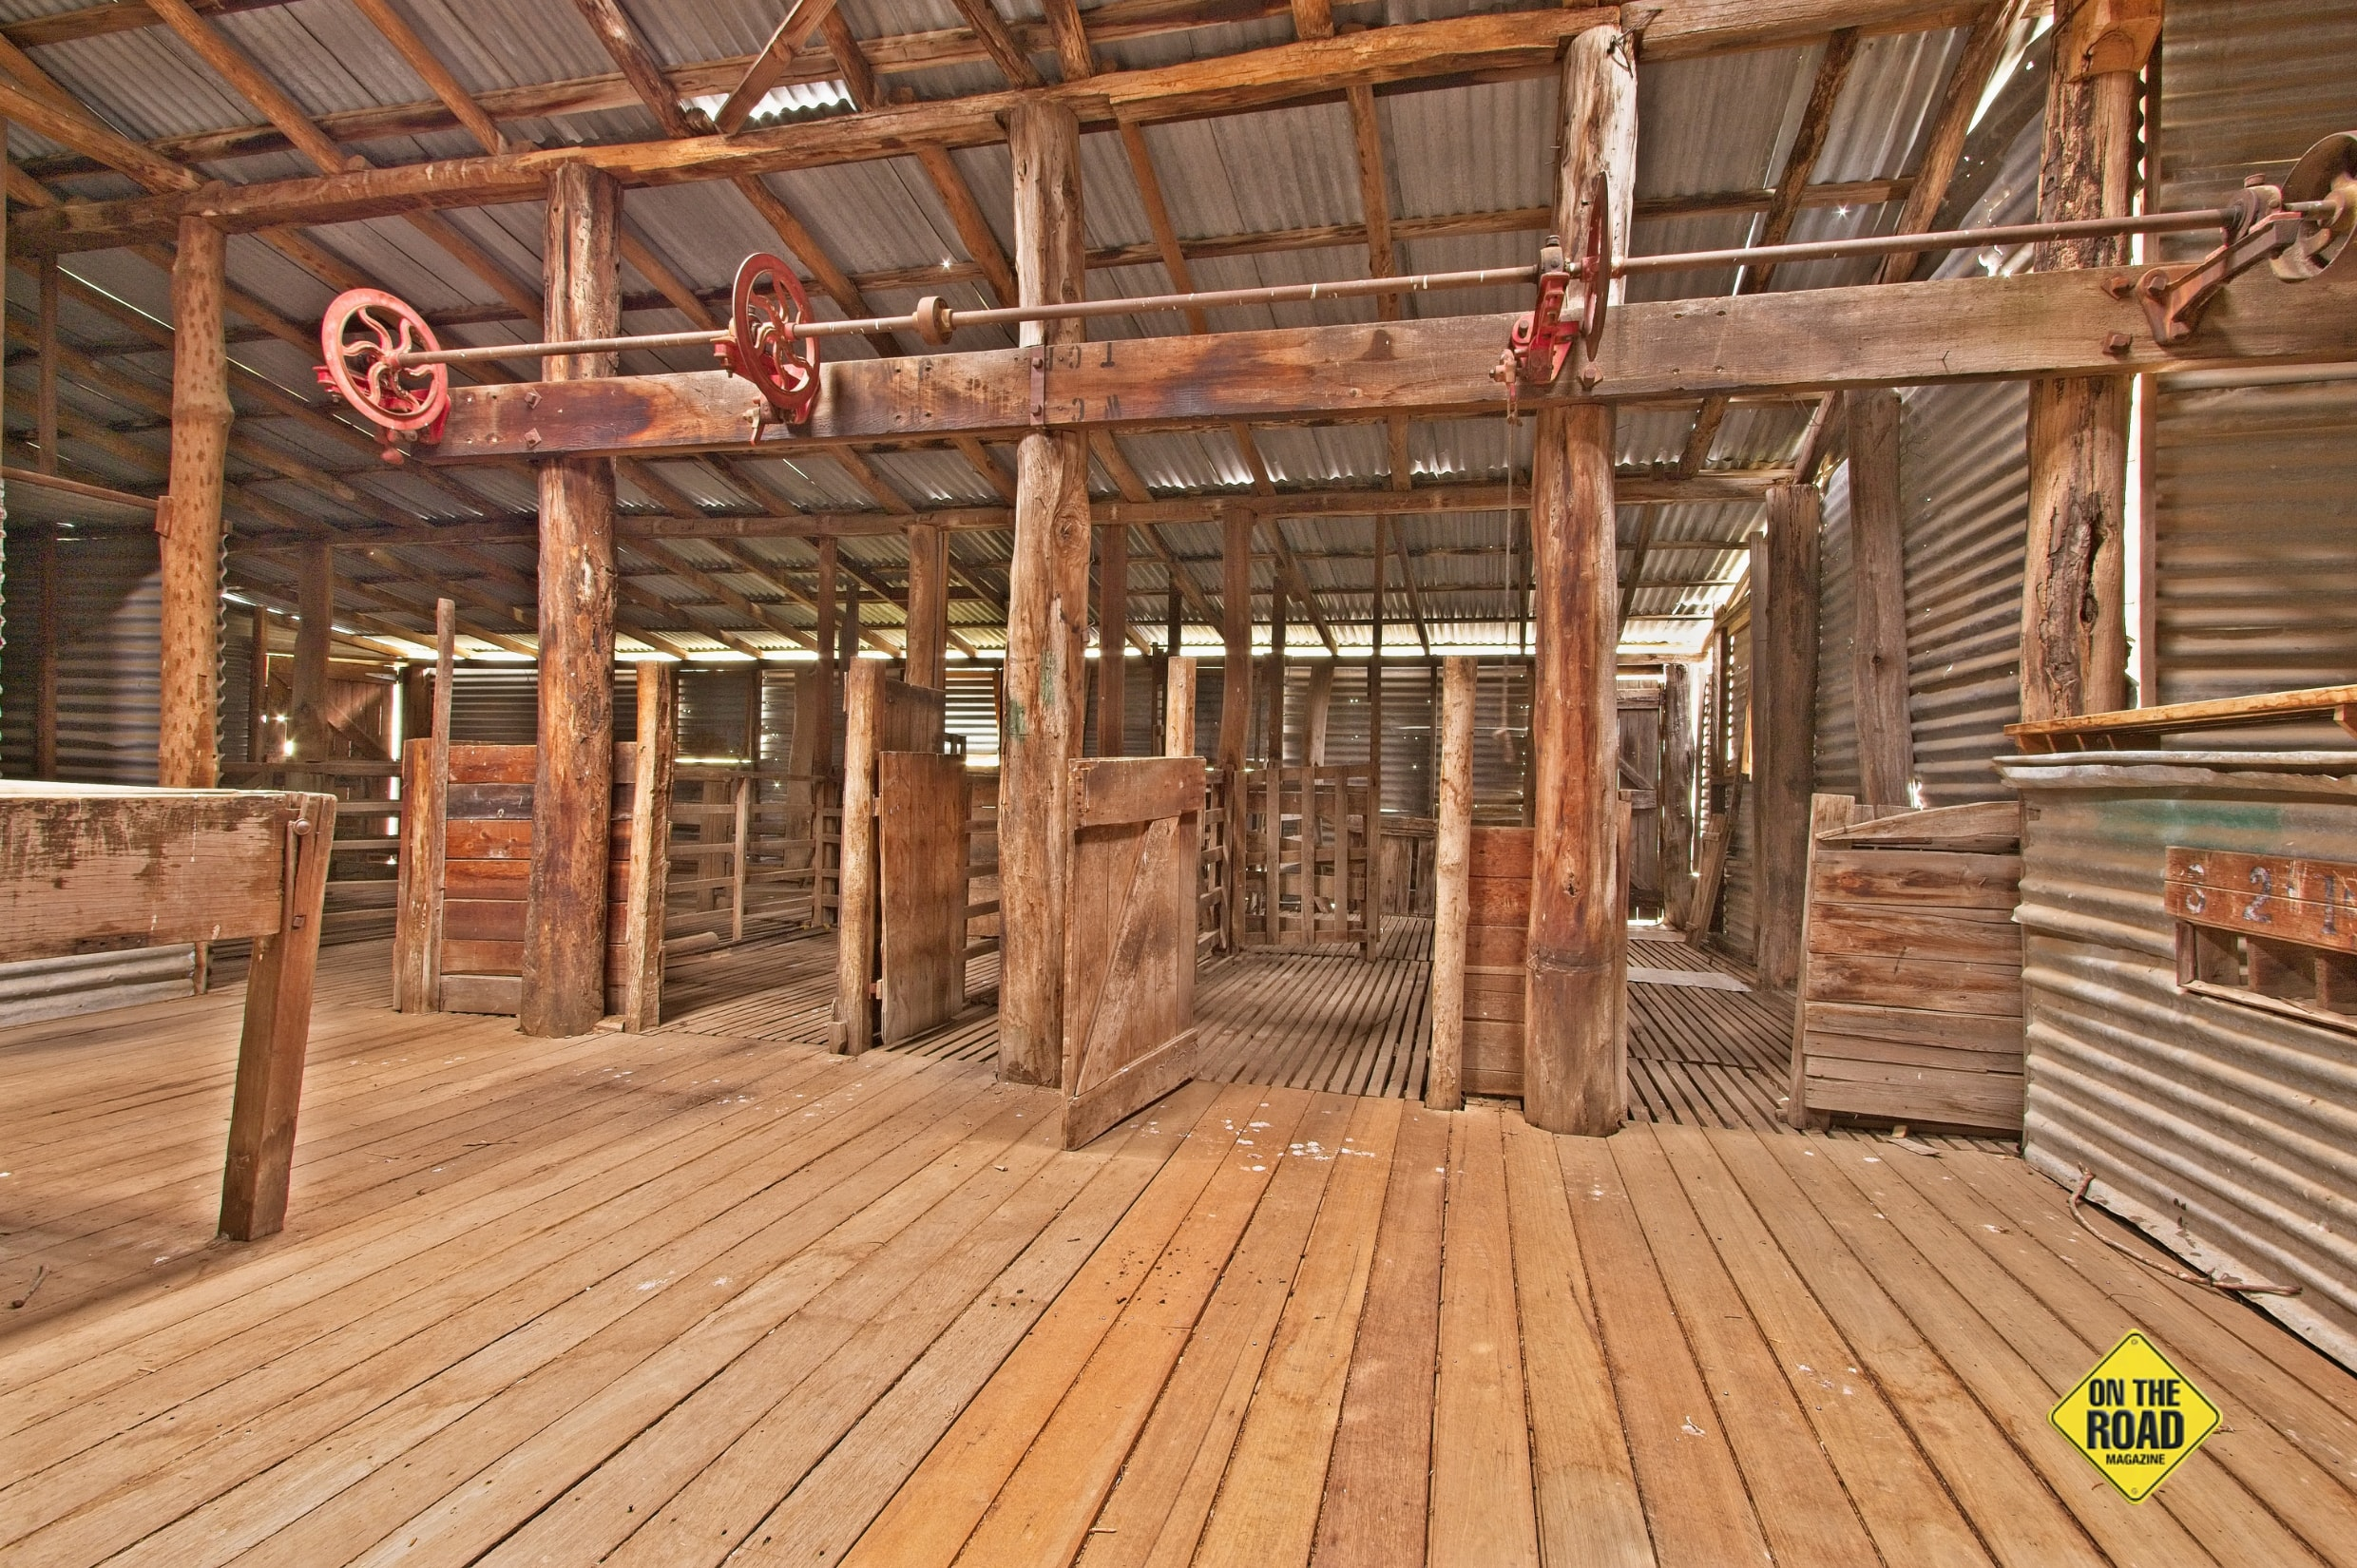 The interior of the Orroral Valley Homestead Woolshed is well worth exploring.